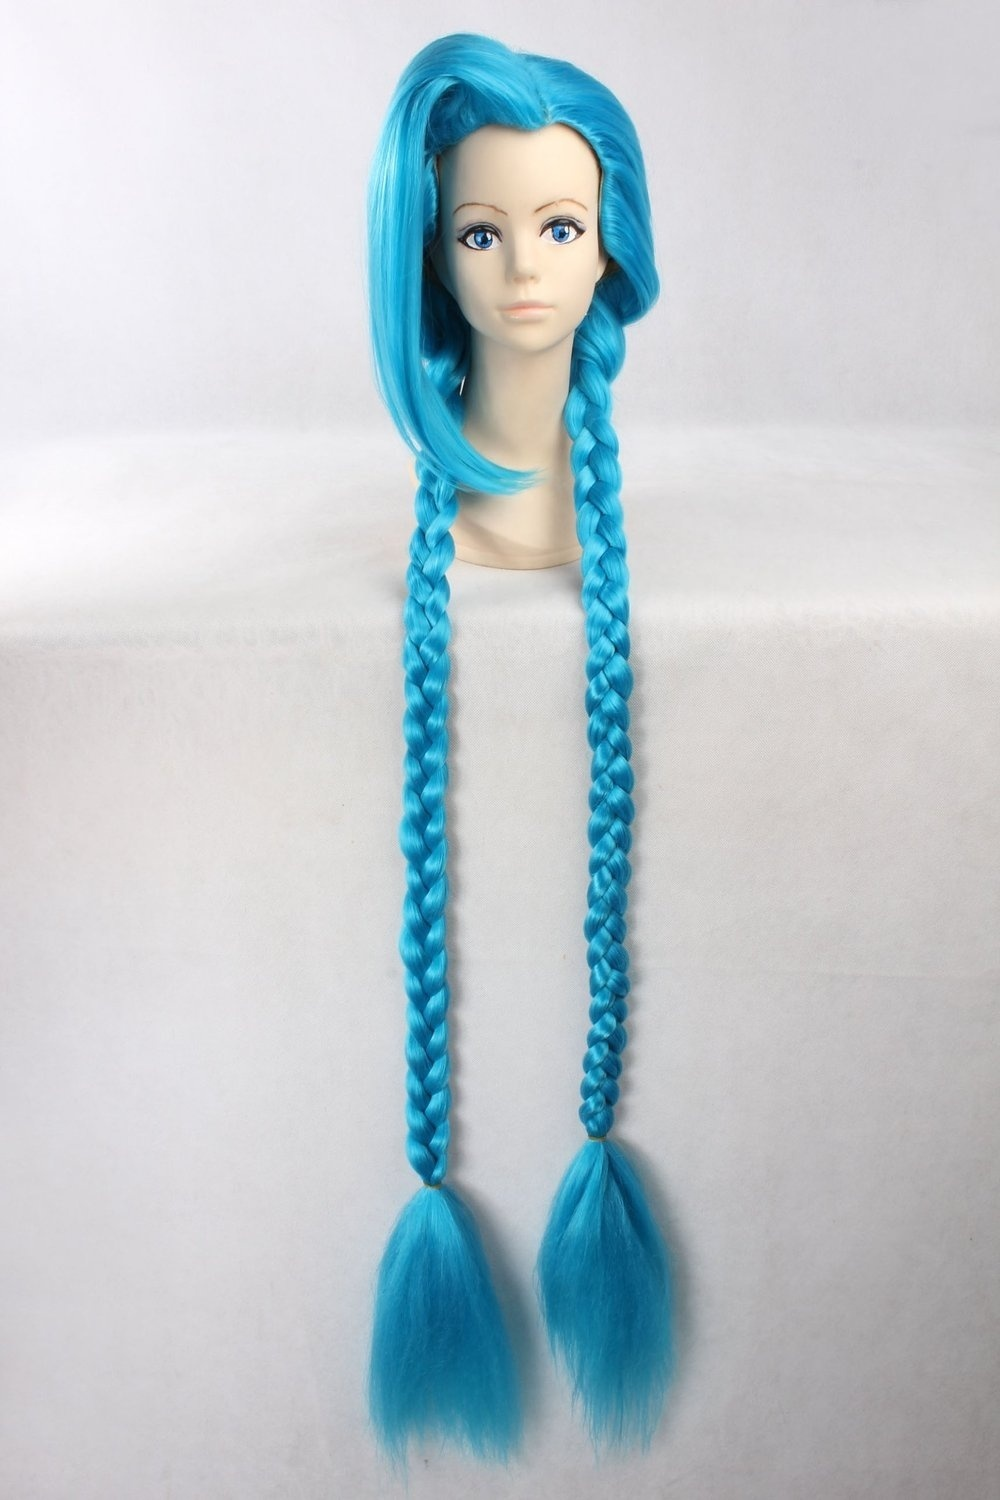 Men's Braids Prestyled Cosplay Party Costume Wigs Long Blue